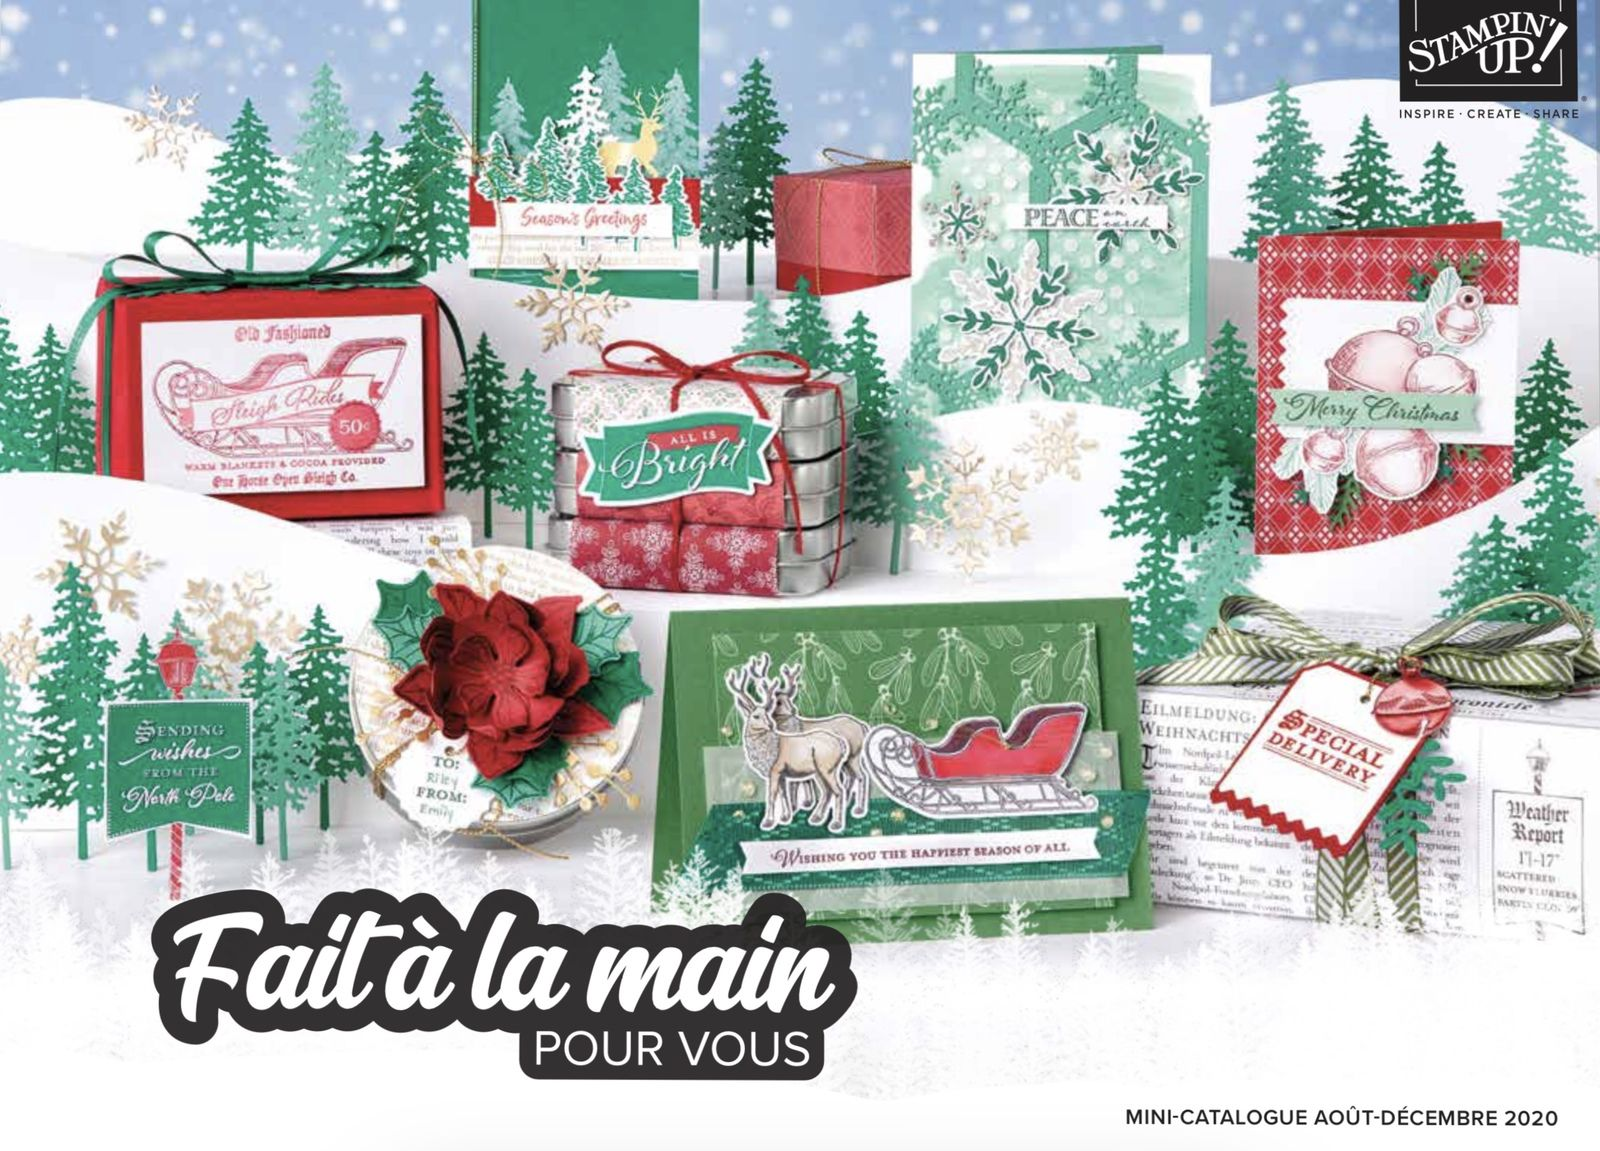 Mini catalogue août-décembre 2020 Stampin'Up!